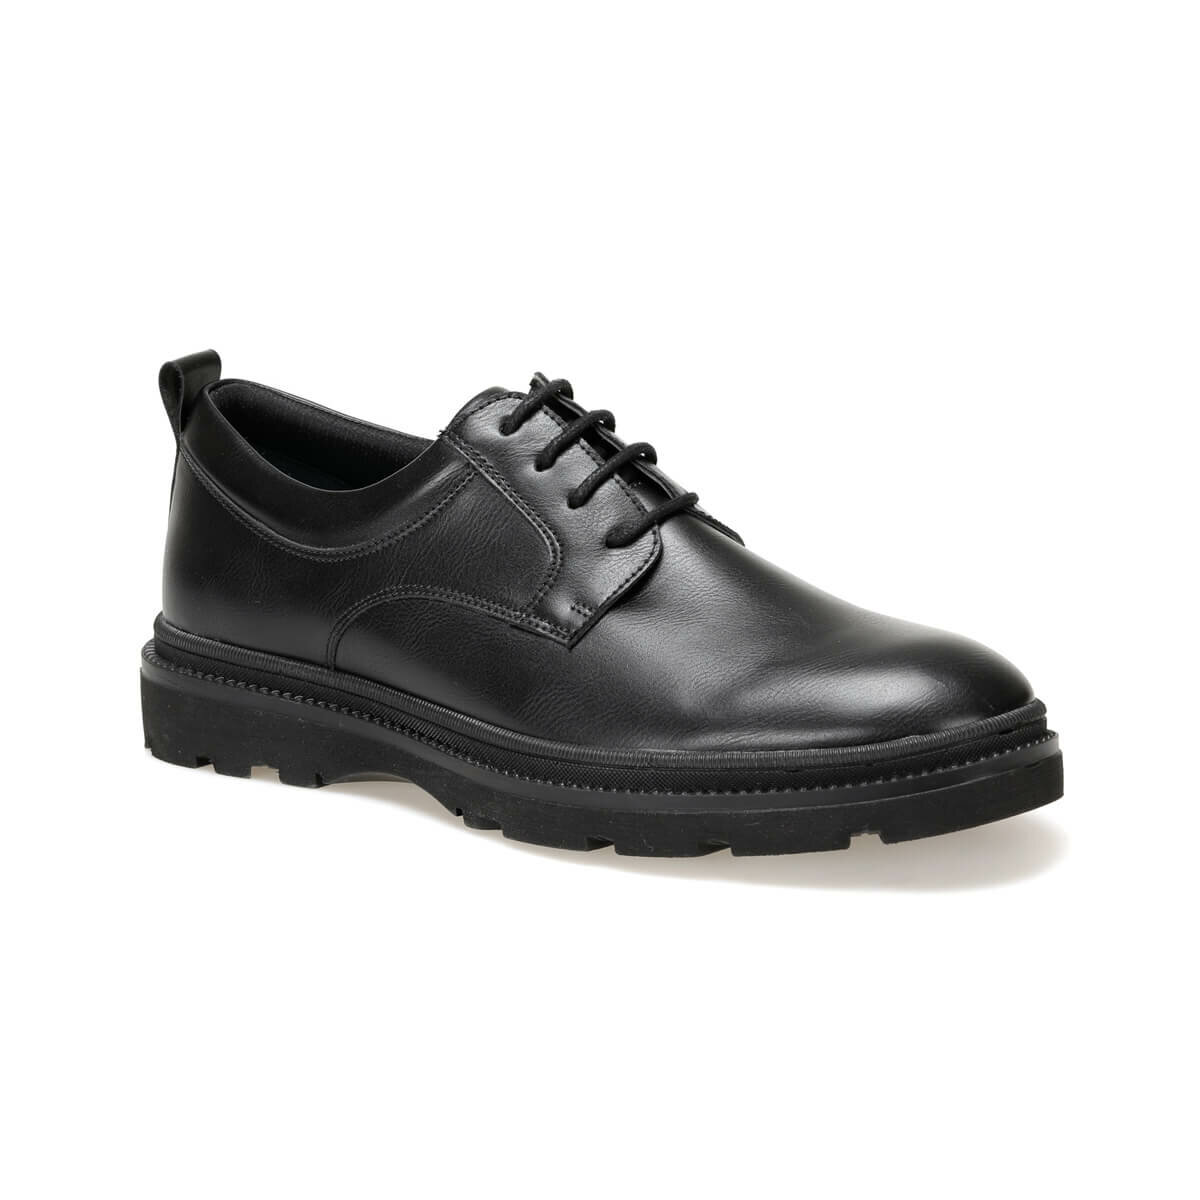 FLO MR2-1 Black Men 'S Classic Shoes JJ-Stiller